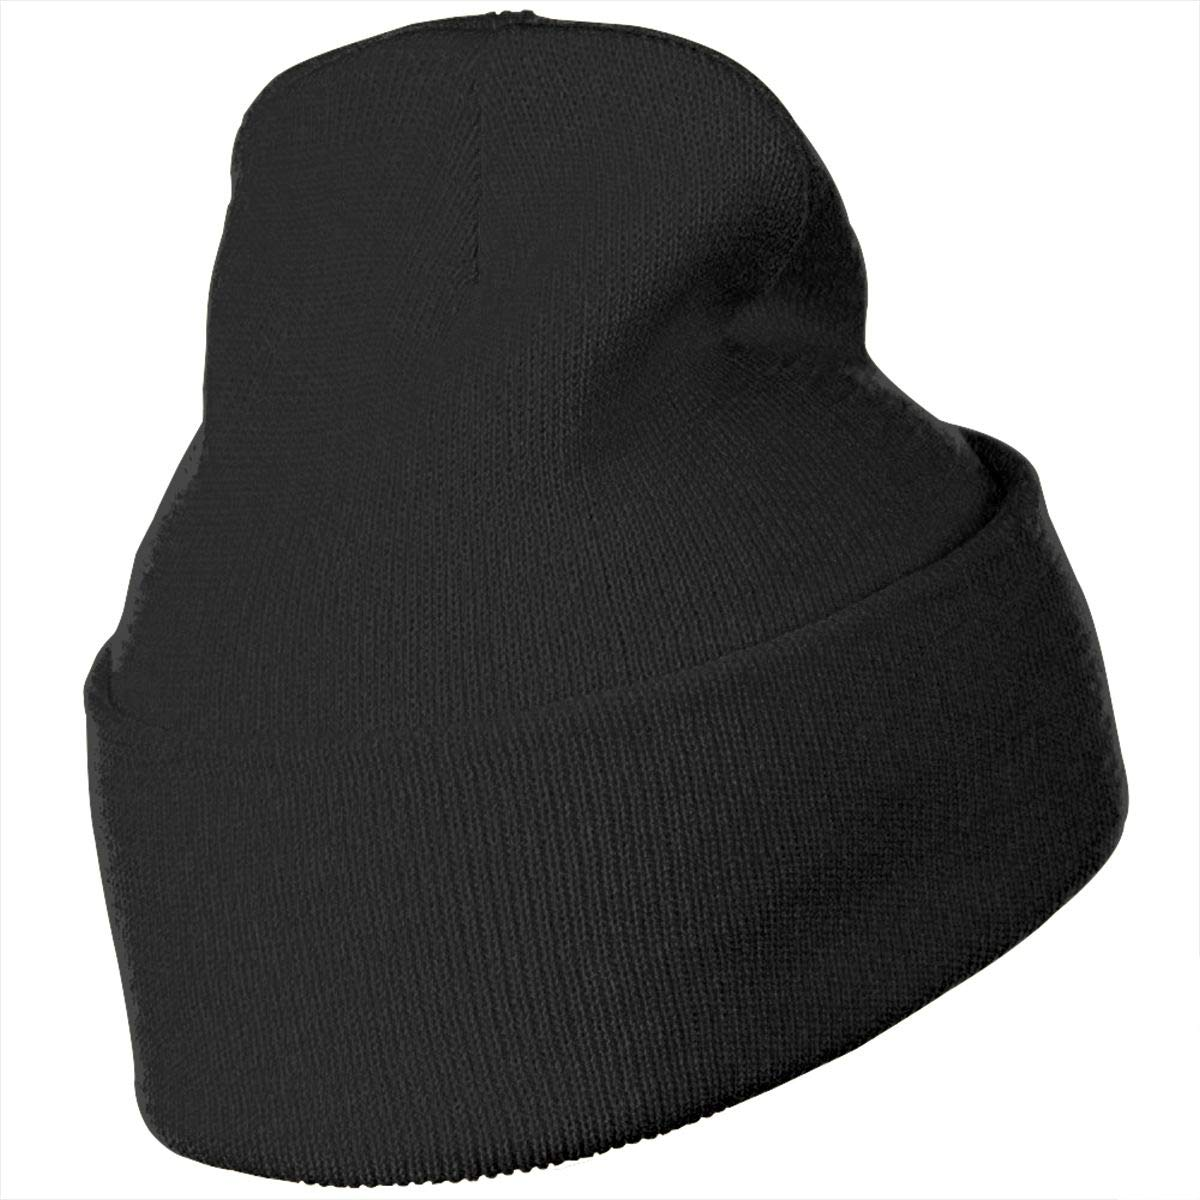 Snowflakes Men /& Women Winter Warm Serious Style Beanie Hat Skull Streetwear Hats